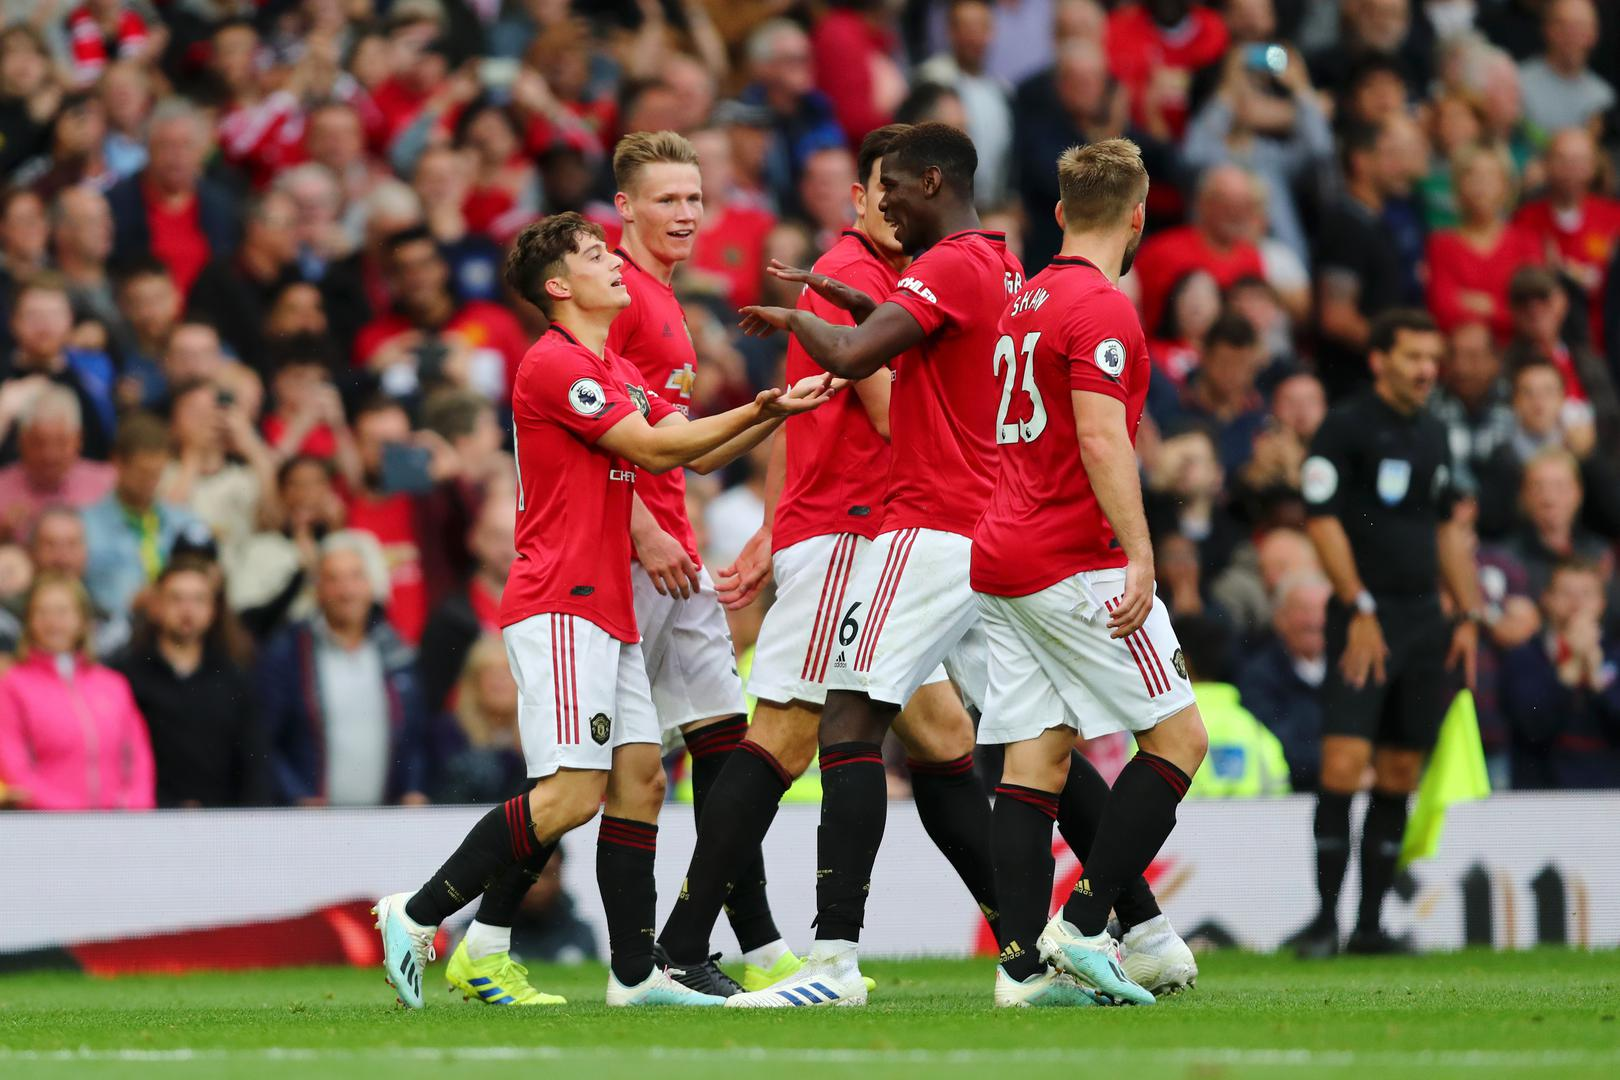 Manchester United players celebrate a goal against Chelsea